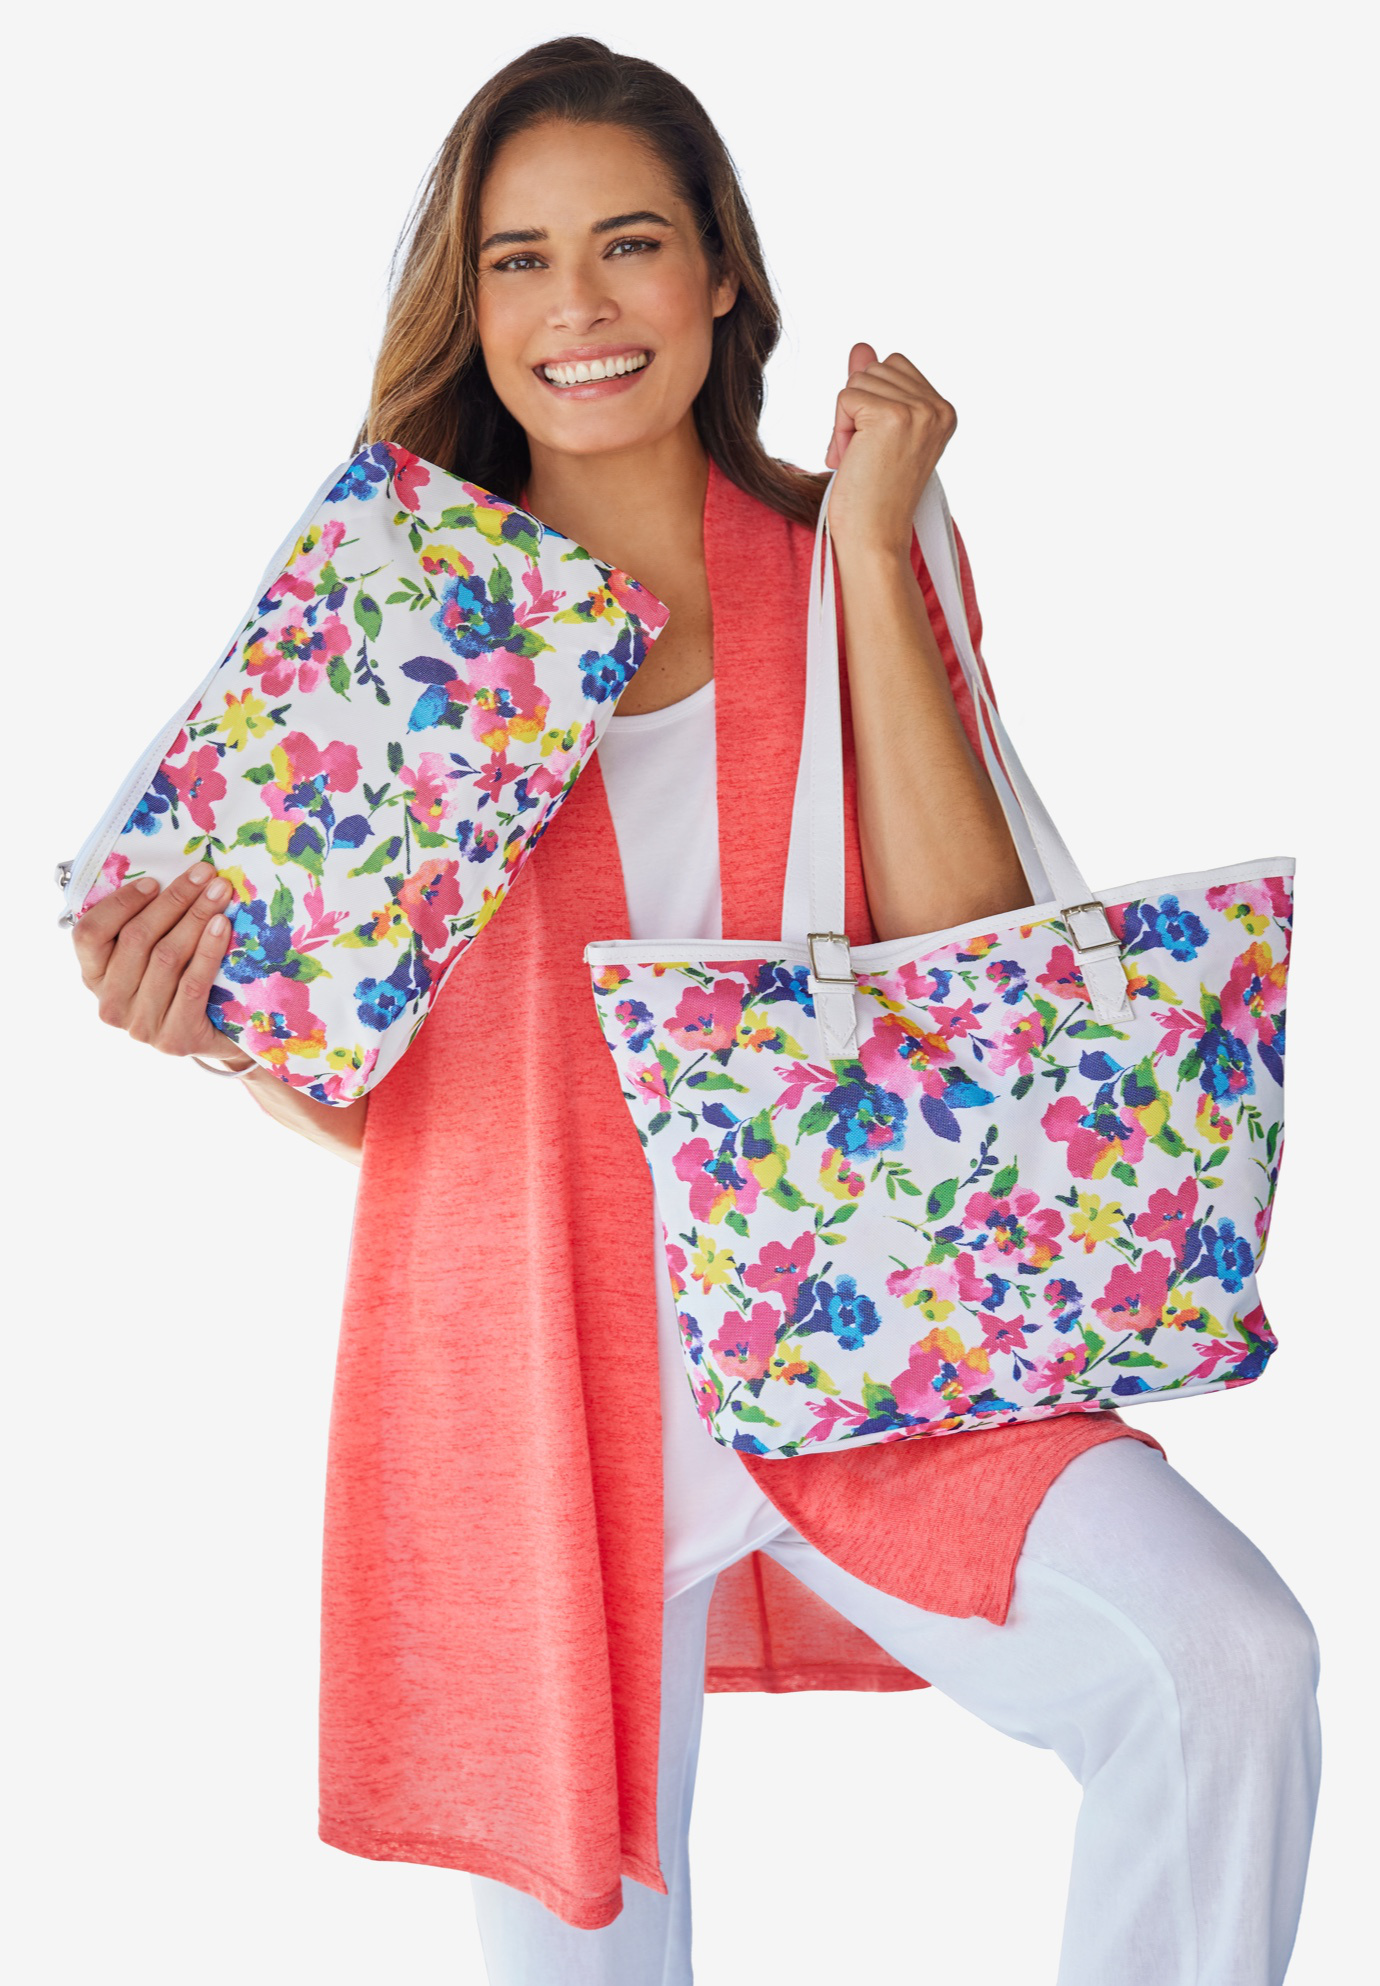 2-Piece Bag & Wristlet Set,